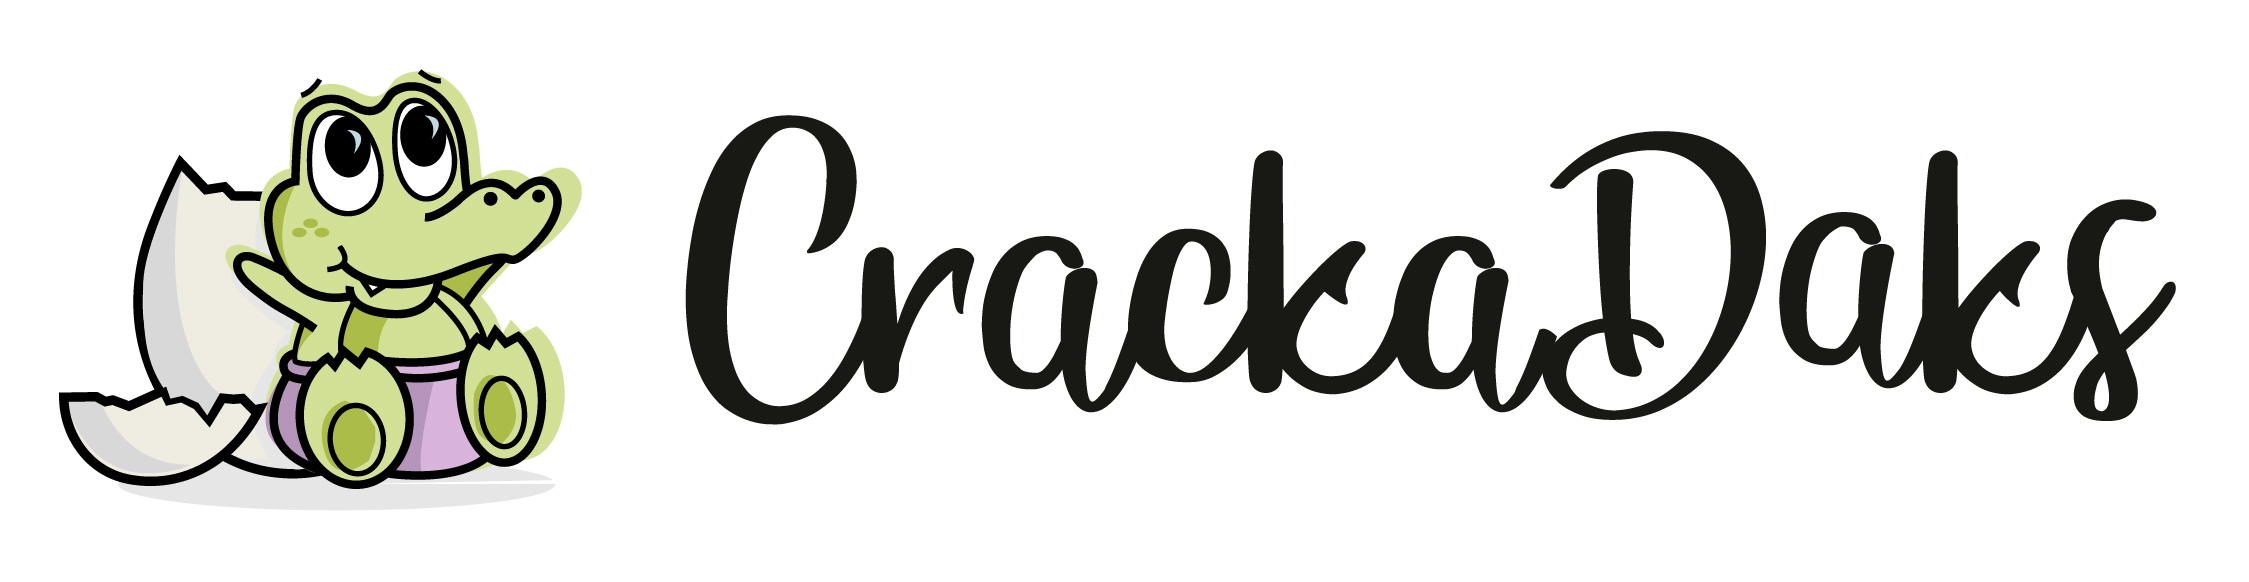 CrackaDaks Modern Cloth Nappies | Premium Designs - Exclusive Cloth - Family Owned - Proudly Australian